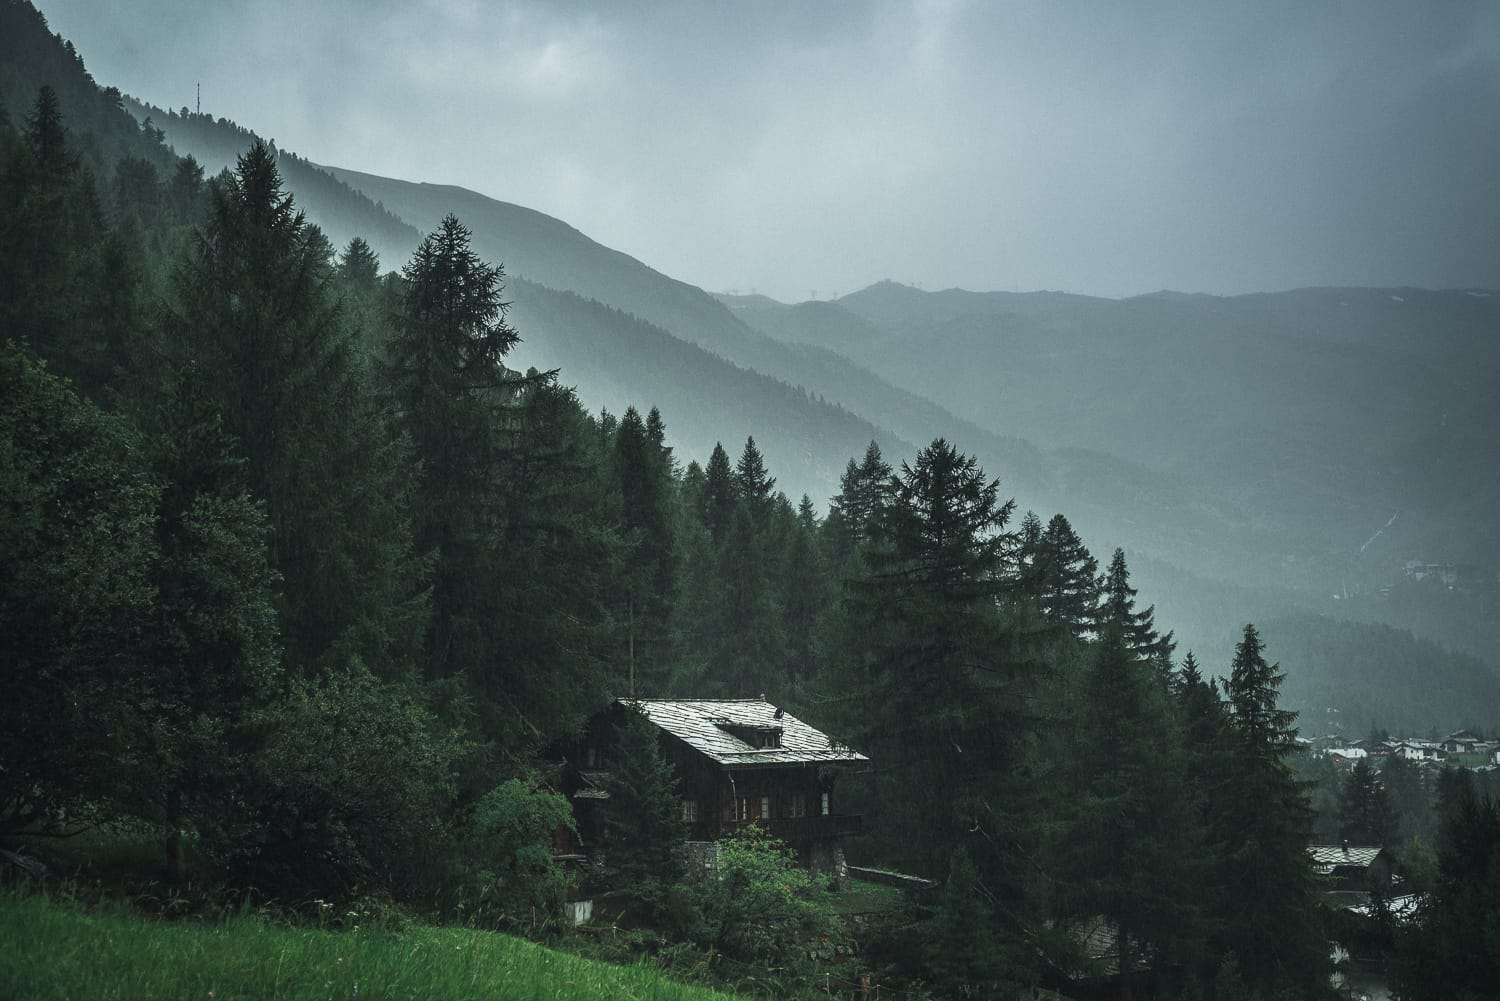 A lonesome chalet in the rain